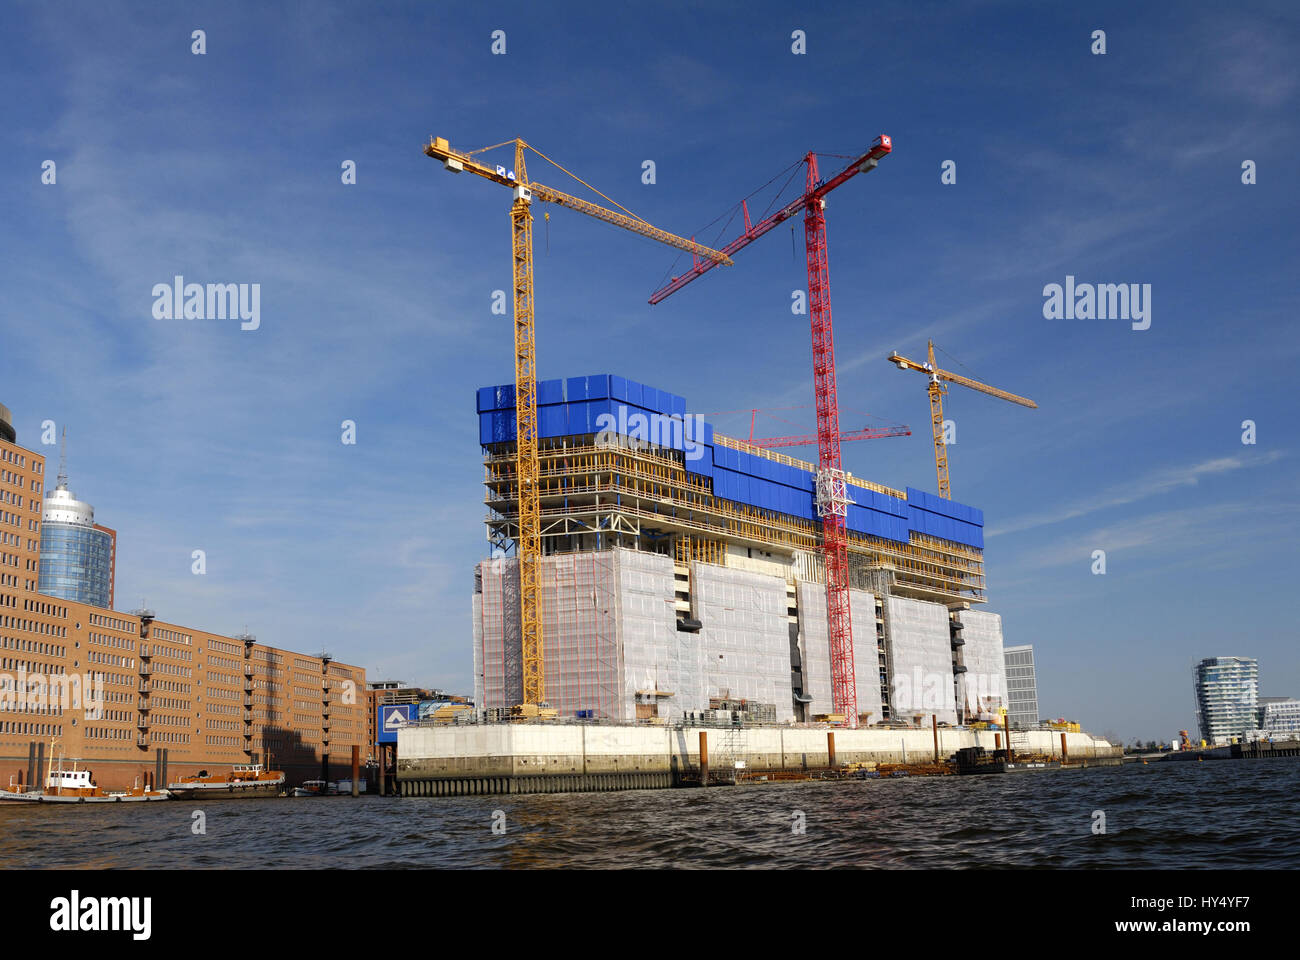 Building site in the Elbphilharmonie and harbour in Hamburg, Germany, Europe, Baustelle an der Elbphilharmonie und - Stock Image